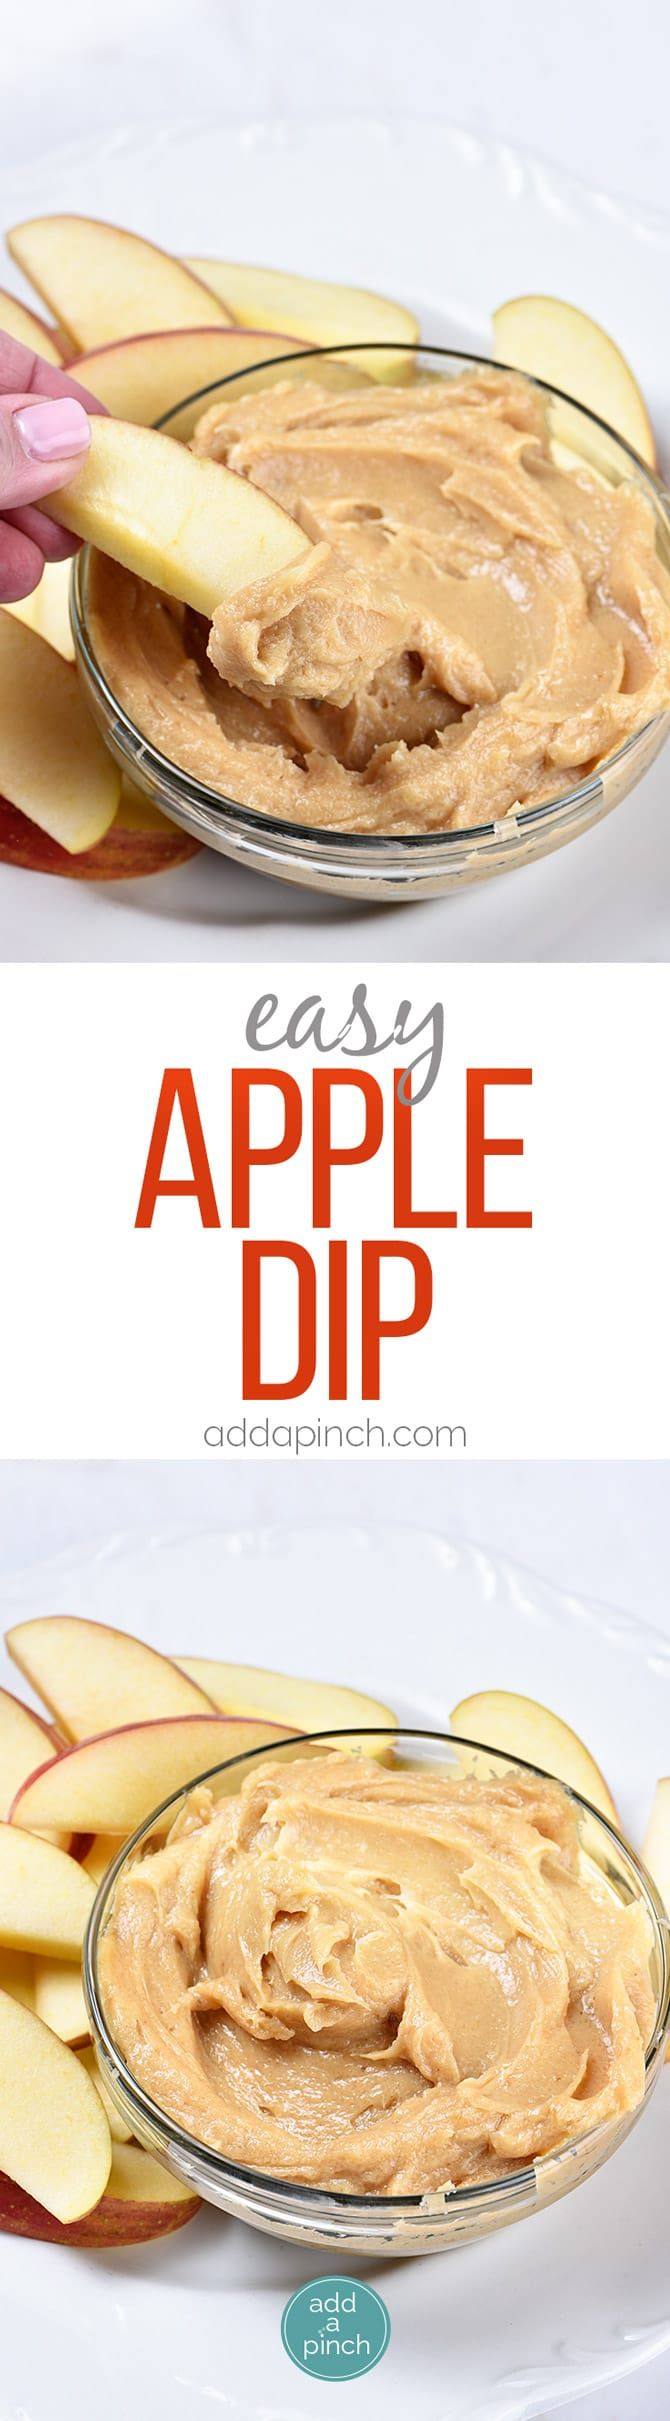 Easy Apple Dip Recipe - This easy Apple Dip Recipe is a definite favorite! Made with just a handful of ingredients, apple dip makes the perfect addition to any get together! // addapinch.com